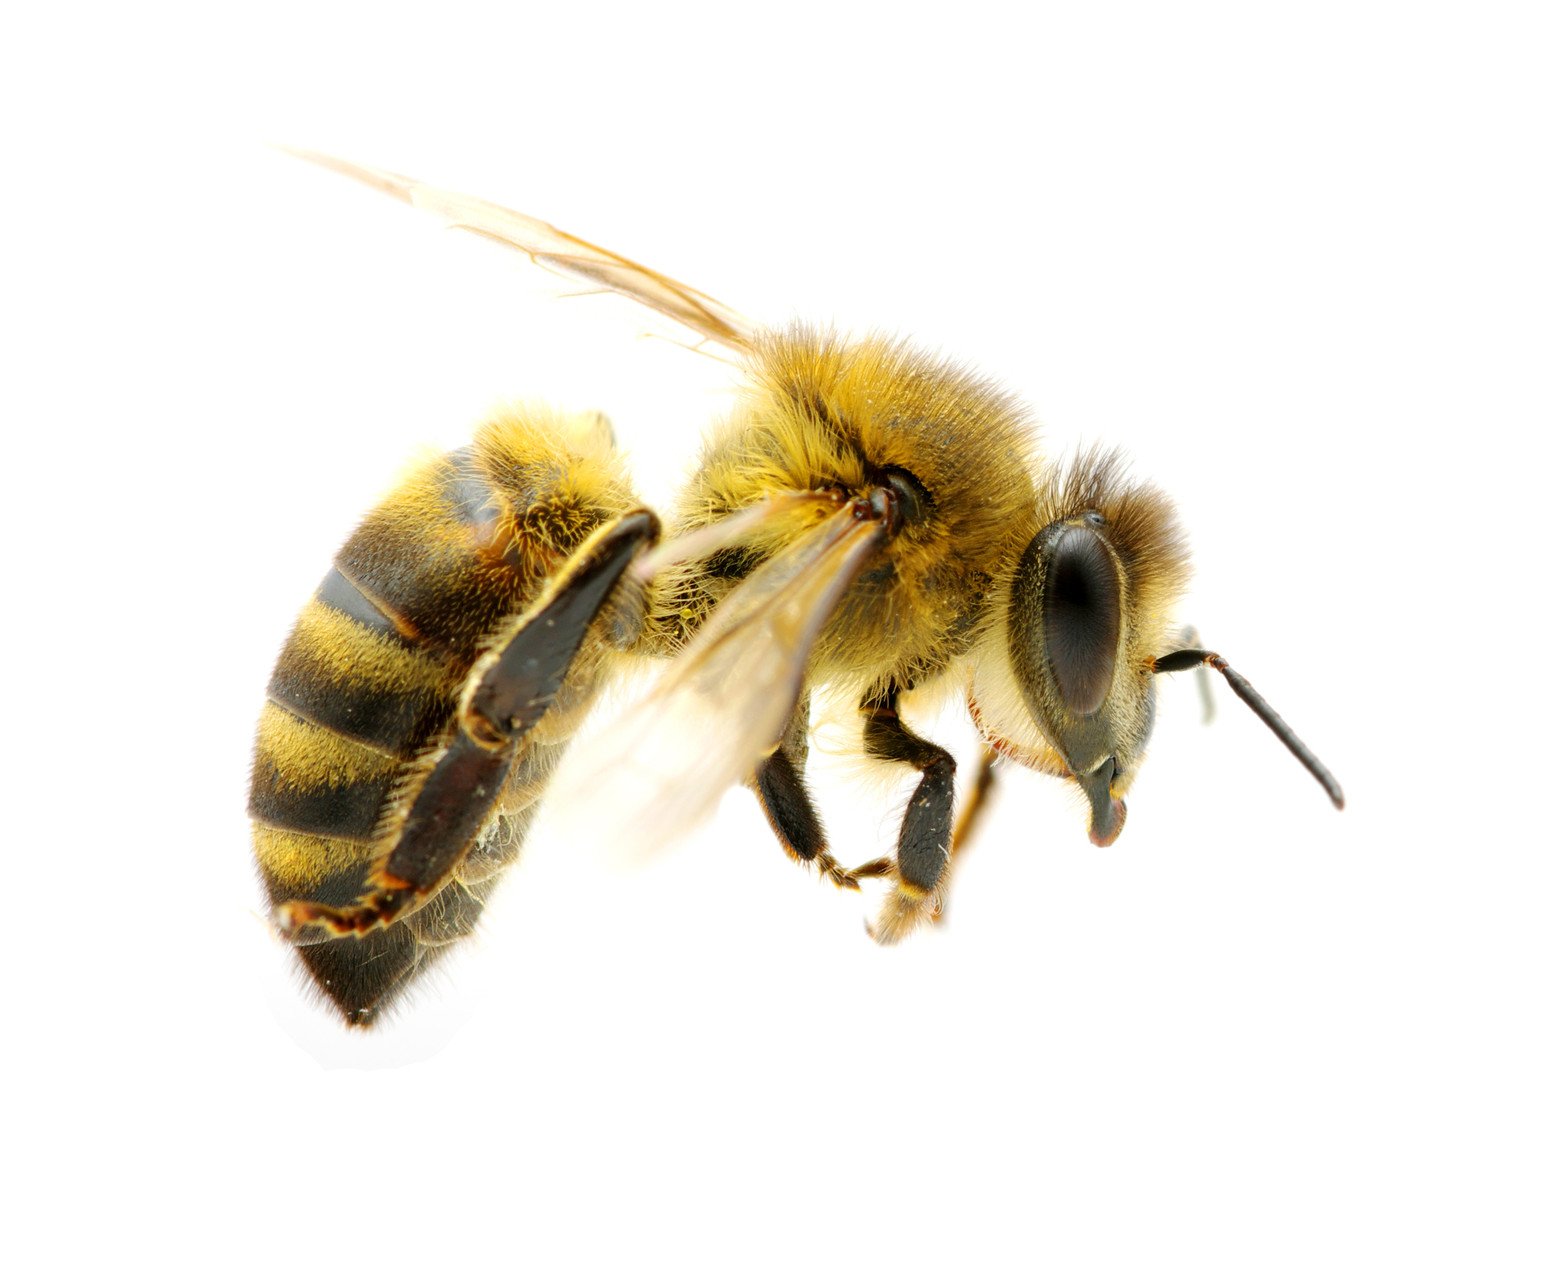 honey bees queen drone and worker with Bees on Bie in addition Whats Wrong With My Hive together with 8254457543 97077cd3cc k also Honeybee Photos further PicturesOfBee.